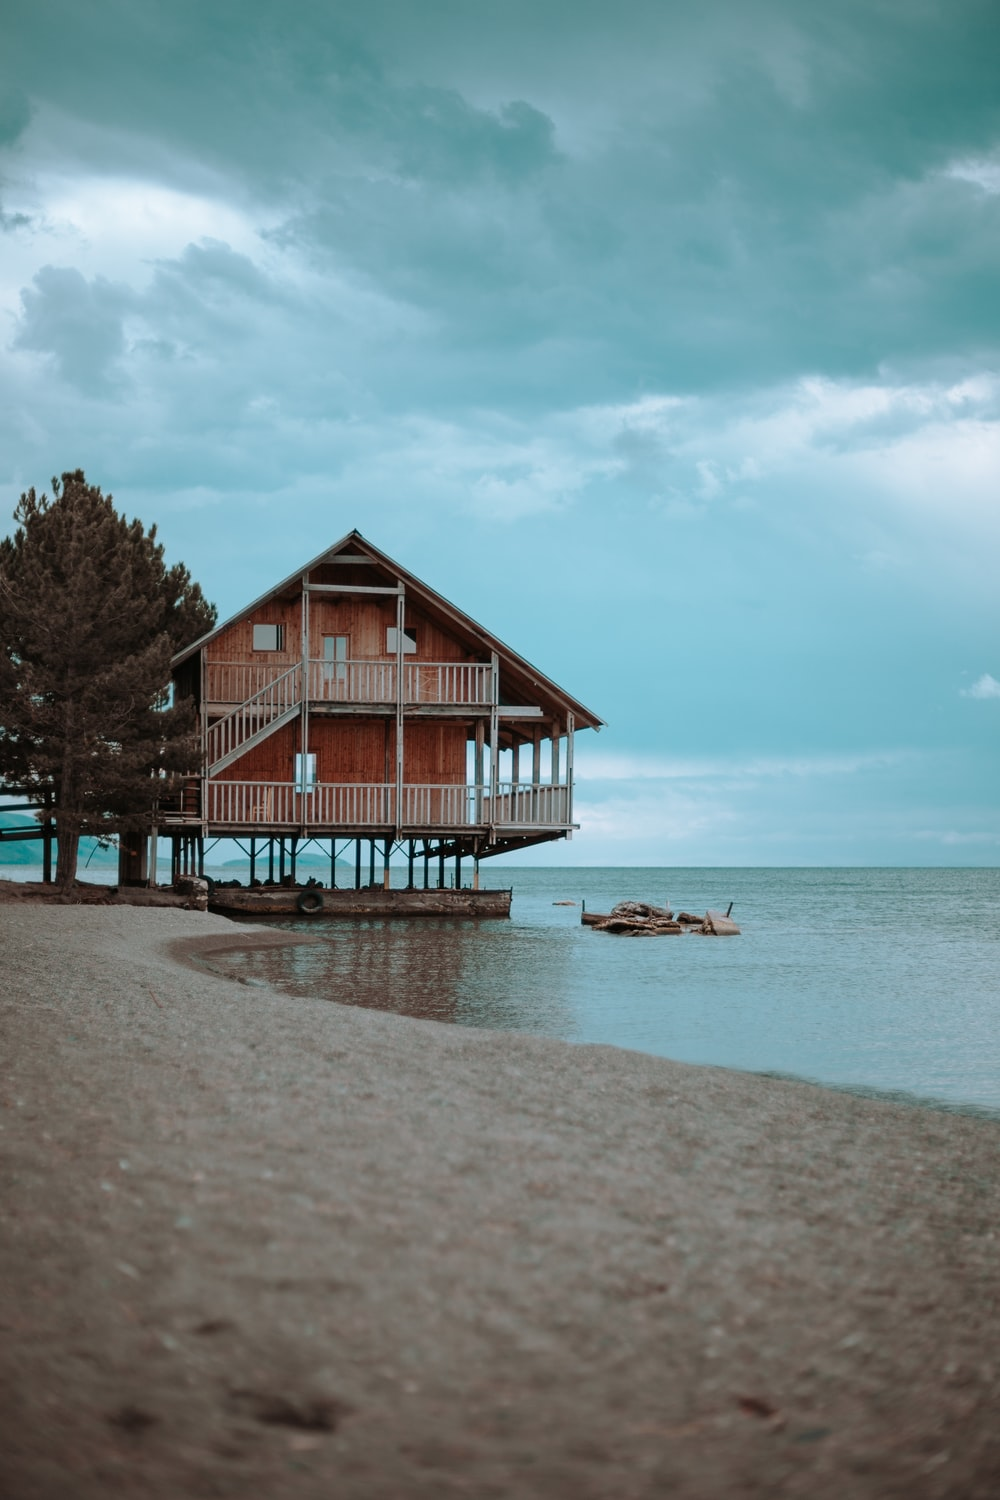 brown wooden 2-story house near body of water